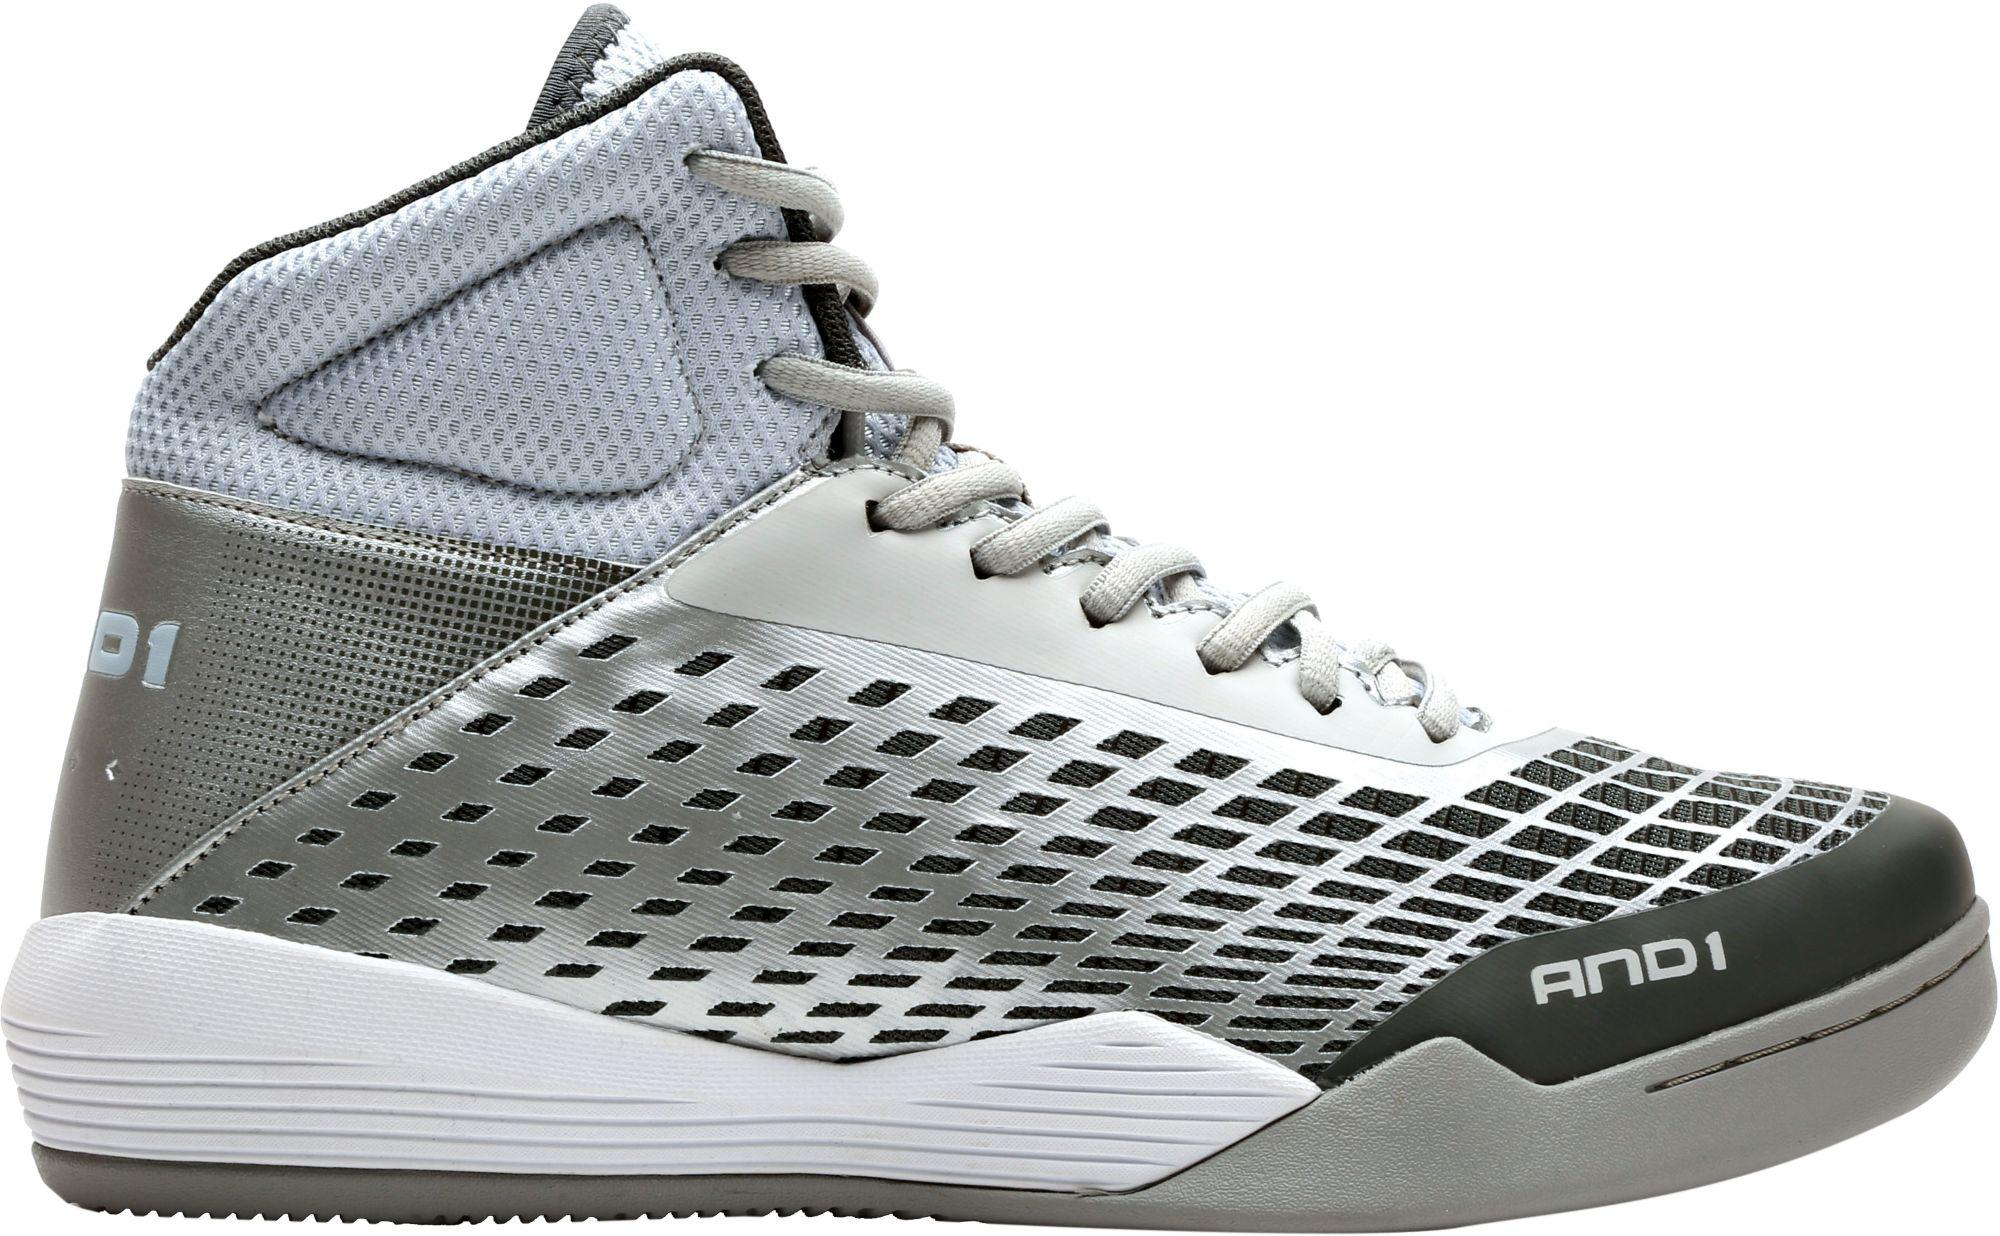 6c162aff524f AND1 Ascender Basketball Shoes in Gray for Men - Lyst